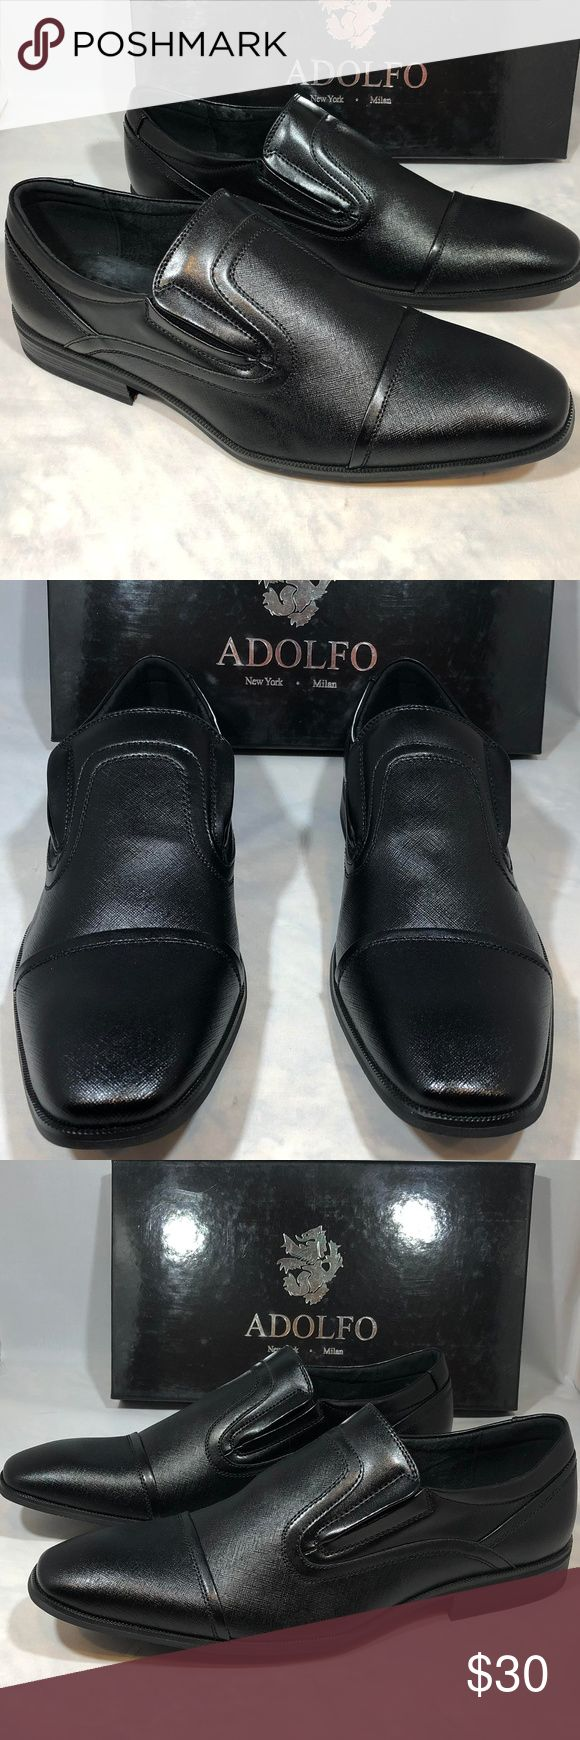 Adolfo Julian Men's Slip-On Cap Toe Dress Shoes Adolfo   Julian Men's Slip-On Cap Toe Dress Shoes  Style: Trump-1  Color: Black  Size: 13  Very nice black slip on dress shoes comes new in original Adolfo box at a fraction of retail! Adolfo Shoes Loafers & Slip-Ons